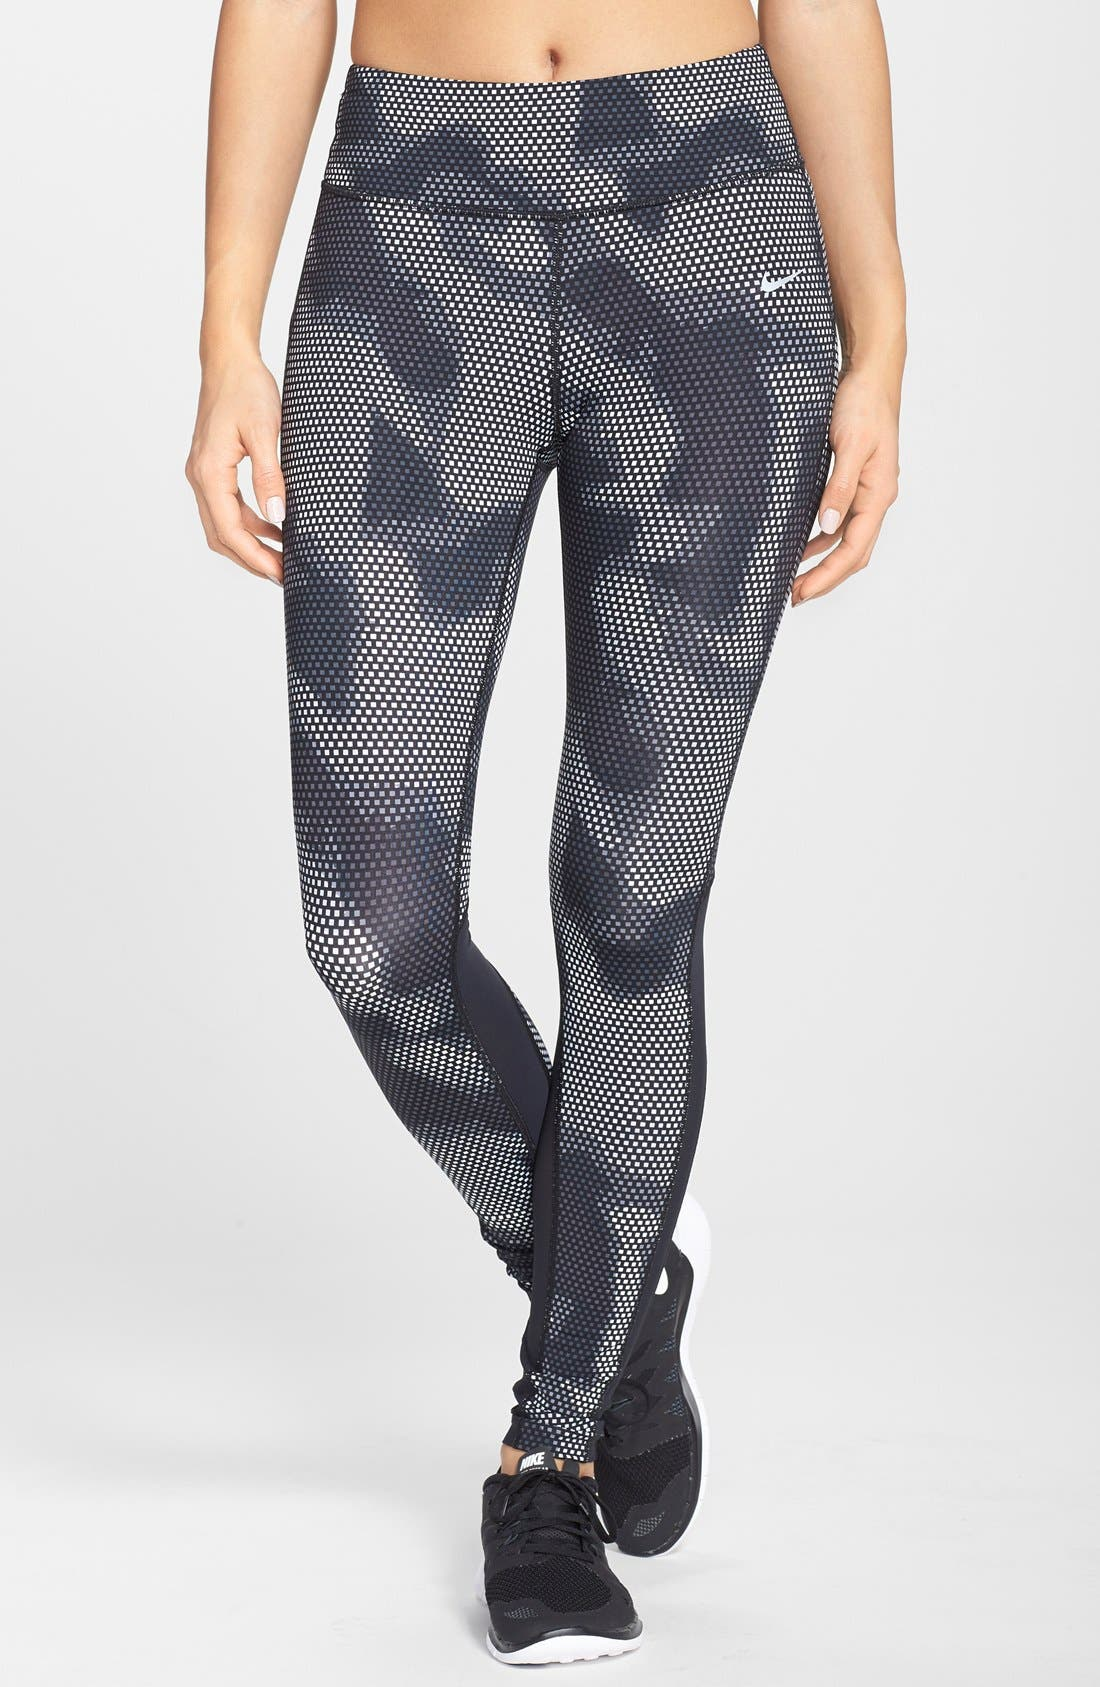 Alternate Image 1 Selected - Nike 'Epic Run - Lux' Dri-FIT Running Tights